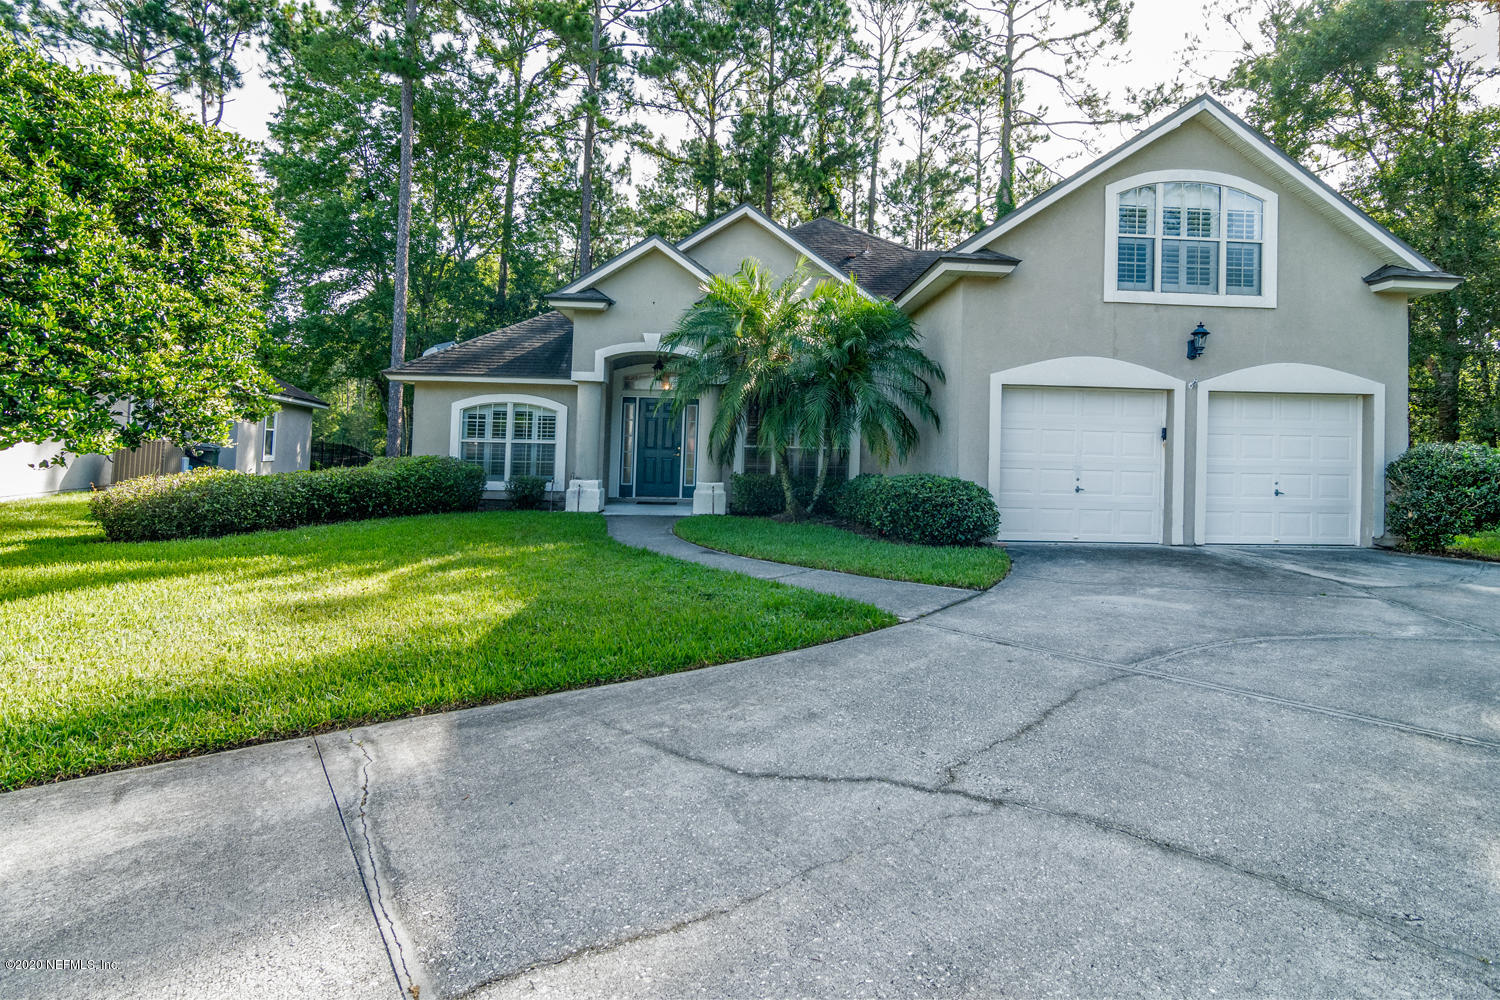 1719 SECLUDED WOODS, FLEMING ISLAND, FLORIDA 32003, 4 Bedrooms Bedrooms, ,3 BathroomsBathrooms,Residential,For sale,SECLUDED WOODS,1062790